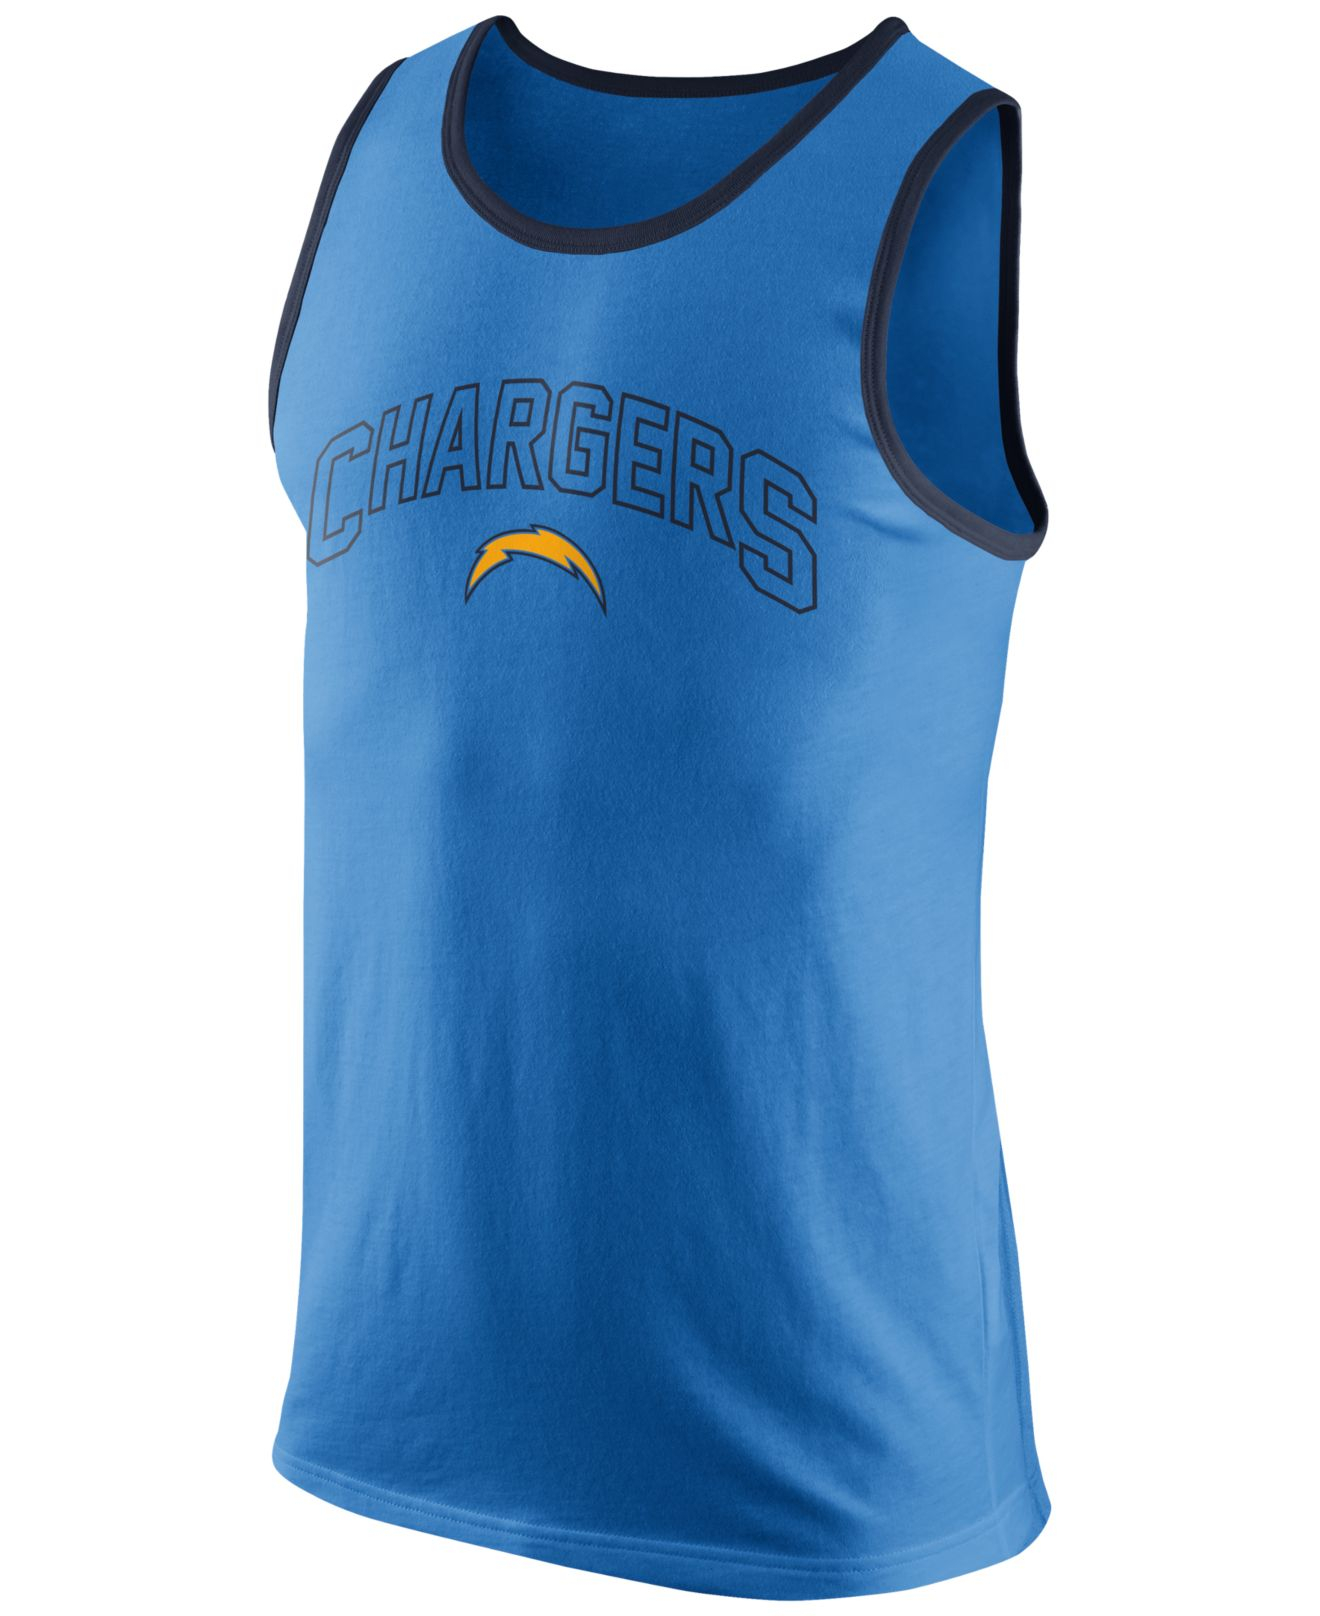 San Diego Chargers Dress: Nike Men'S San Diego Chargers Team Tank Top In Blue For